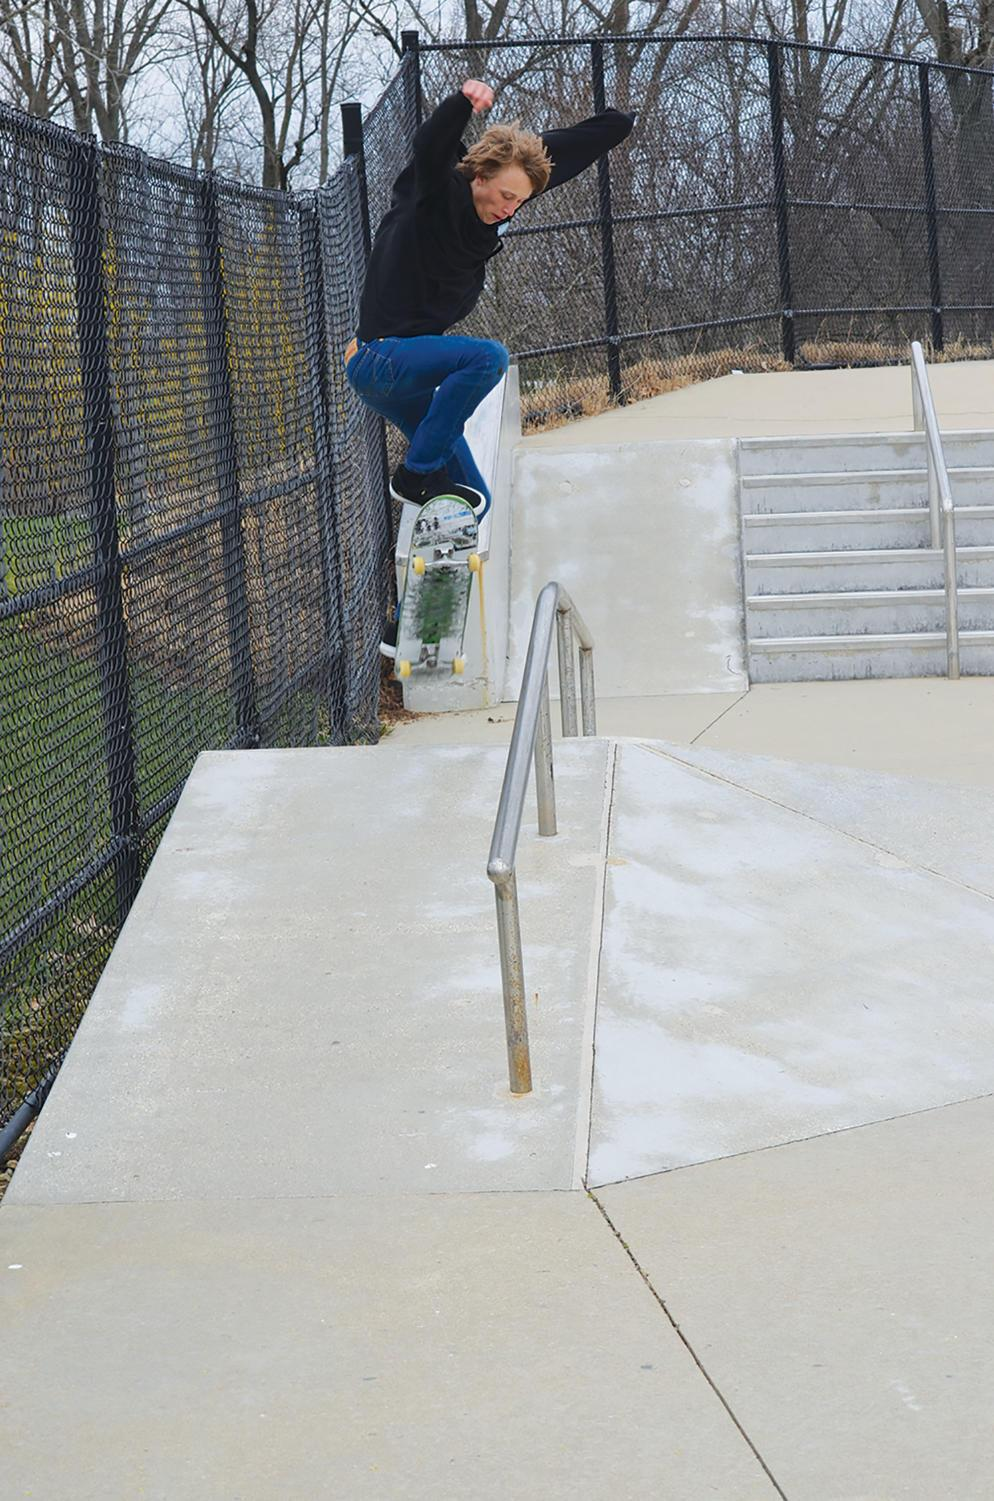 AIR TIME: Skateboarder and junior Mitchell Johnson jumps a rail in James Dillon skatepark. Johnson said he likes how the Monon Center has rails so he can practice his new tricks. Agrayan Gupta | Photo